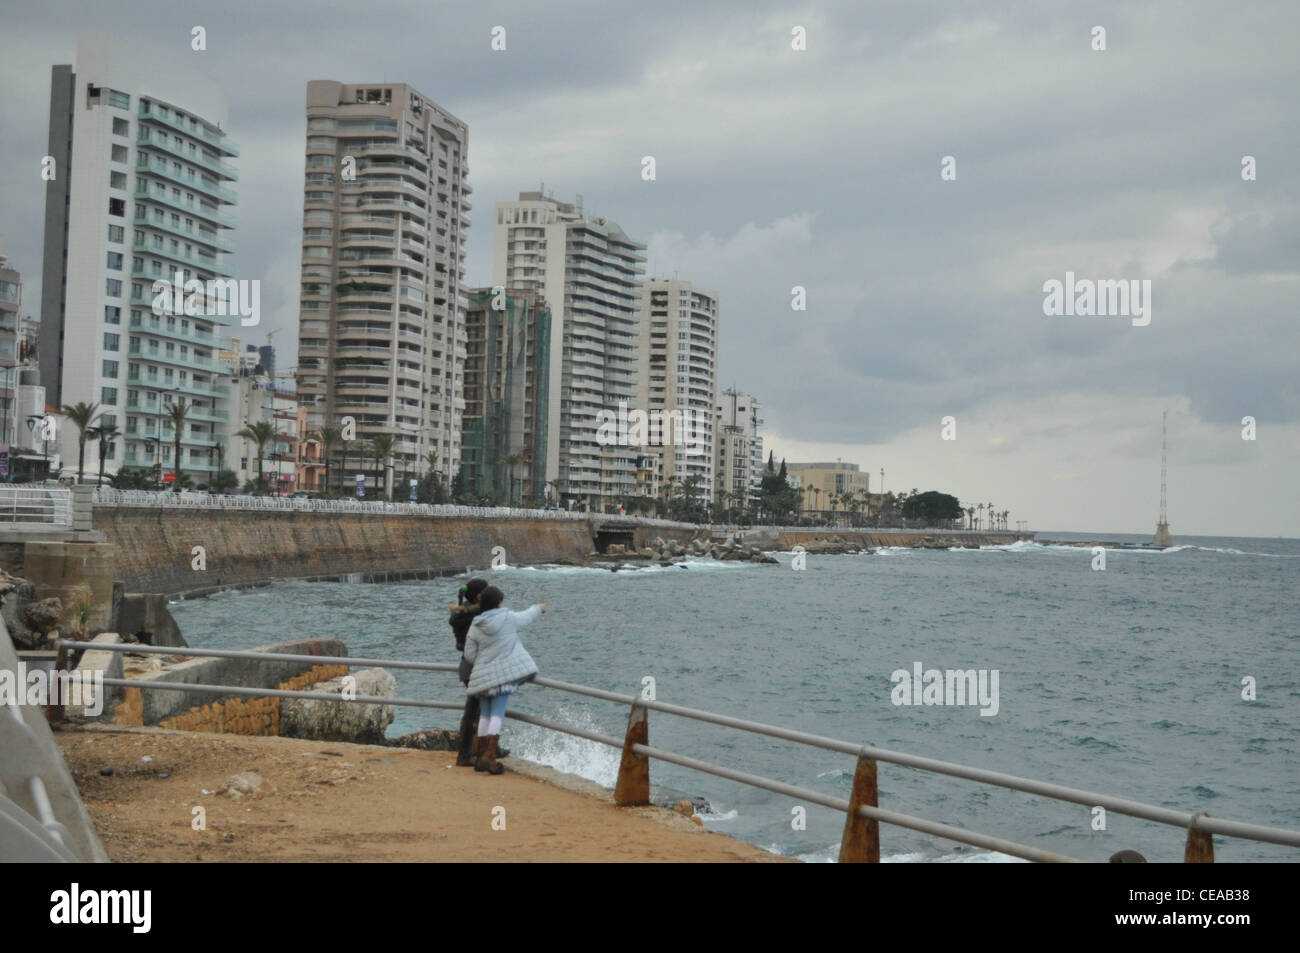 Enfants sur la corniche, la promenade à Beyrouth Photo Stock